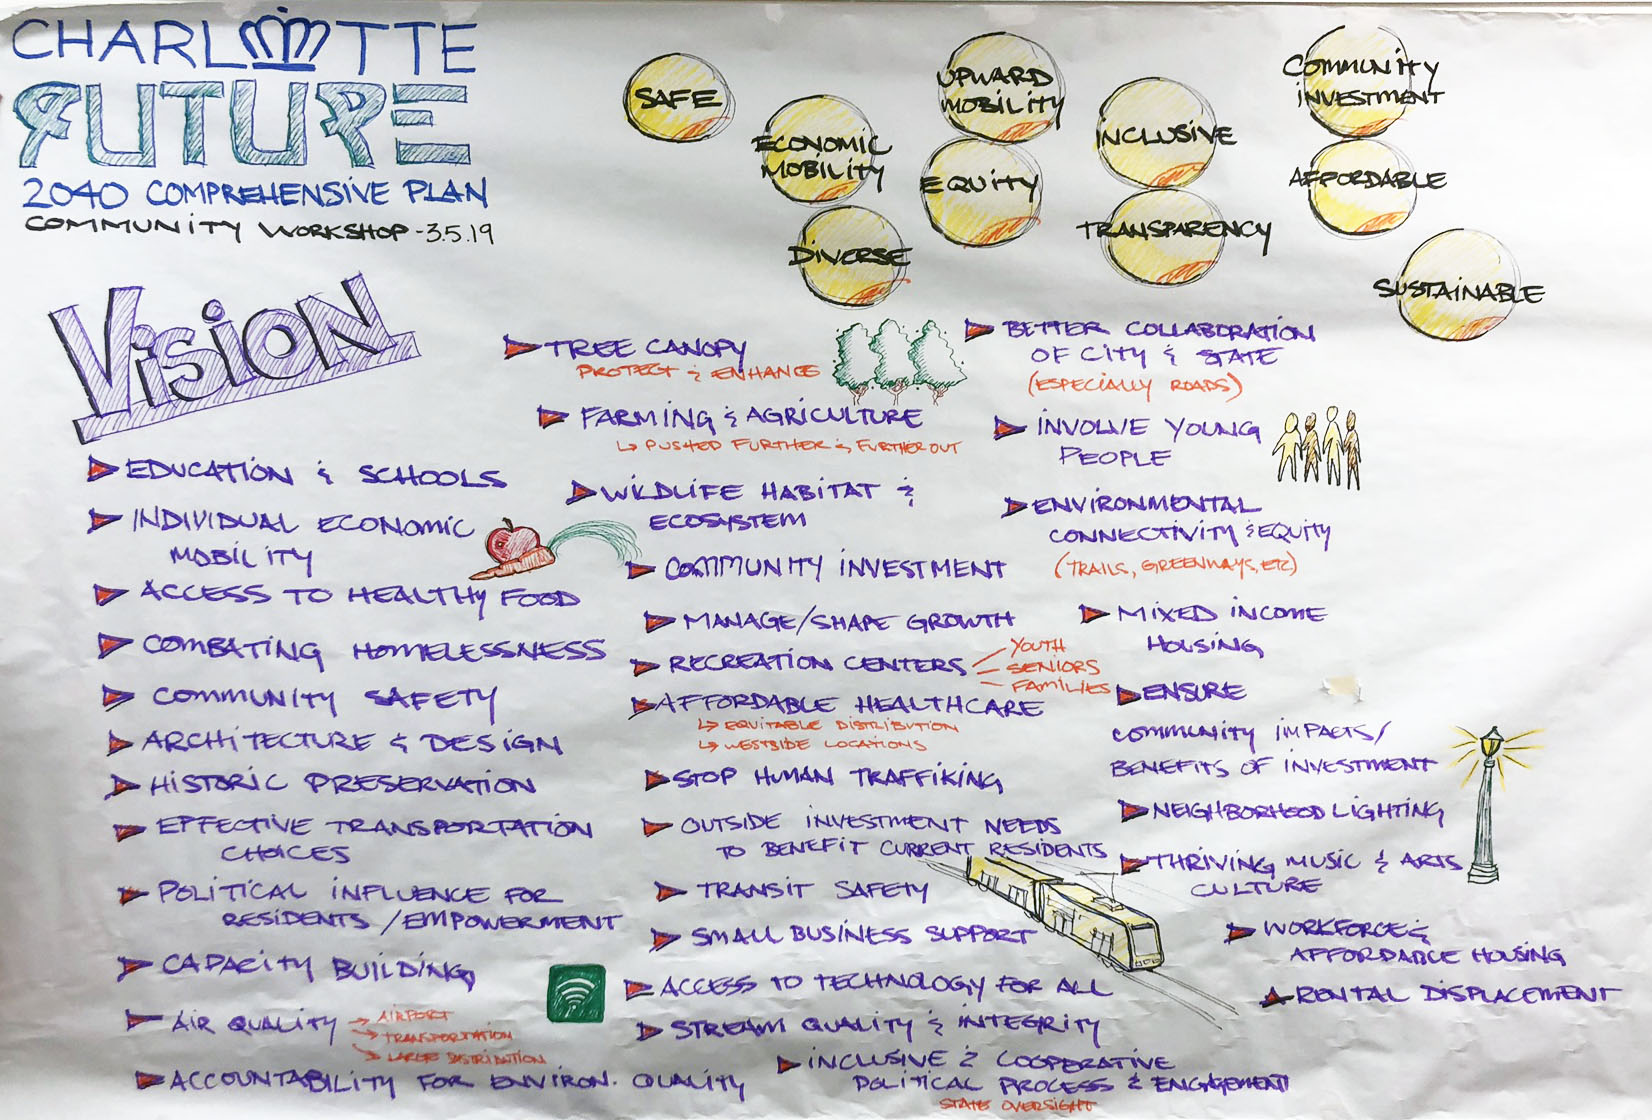 Image of hand taken notes from the vision and values workshop held on Tuesday, March 5th.